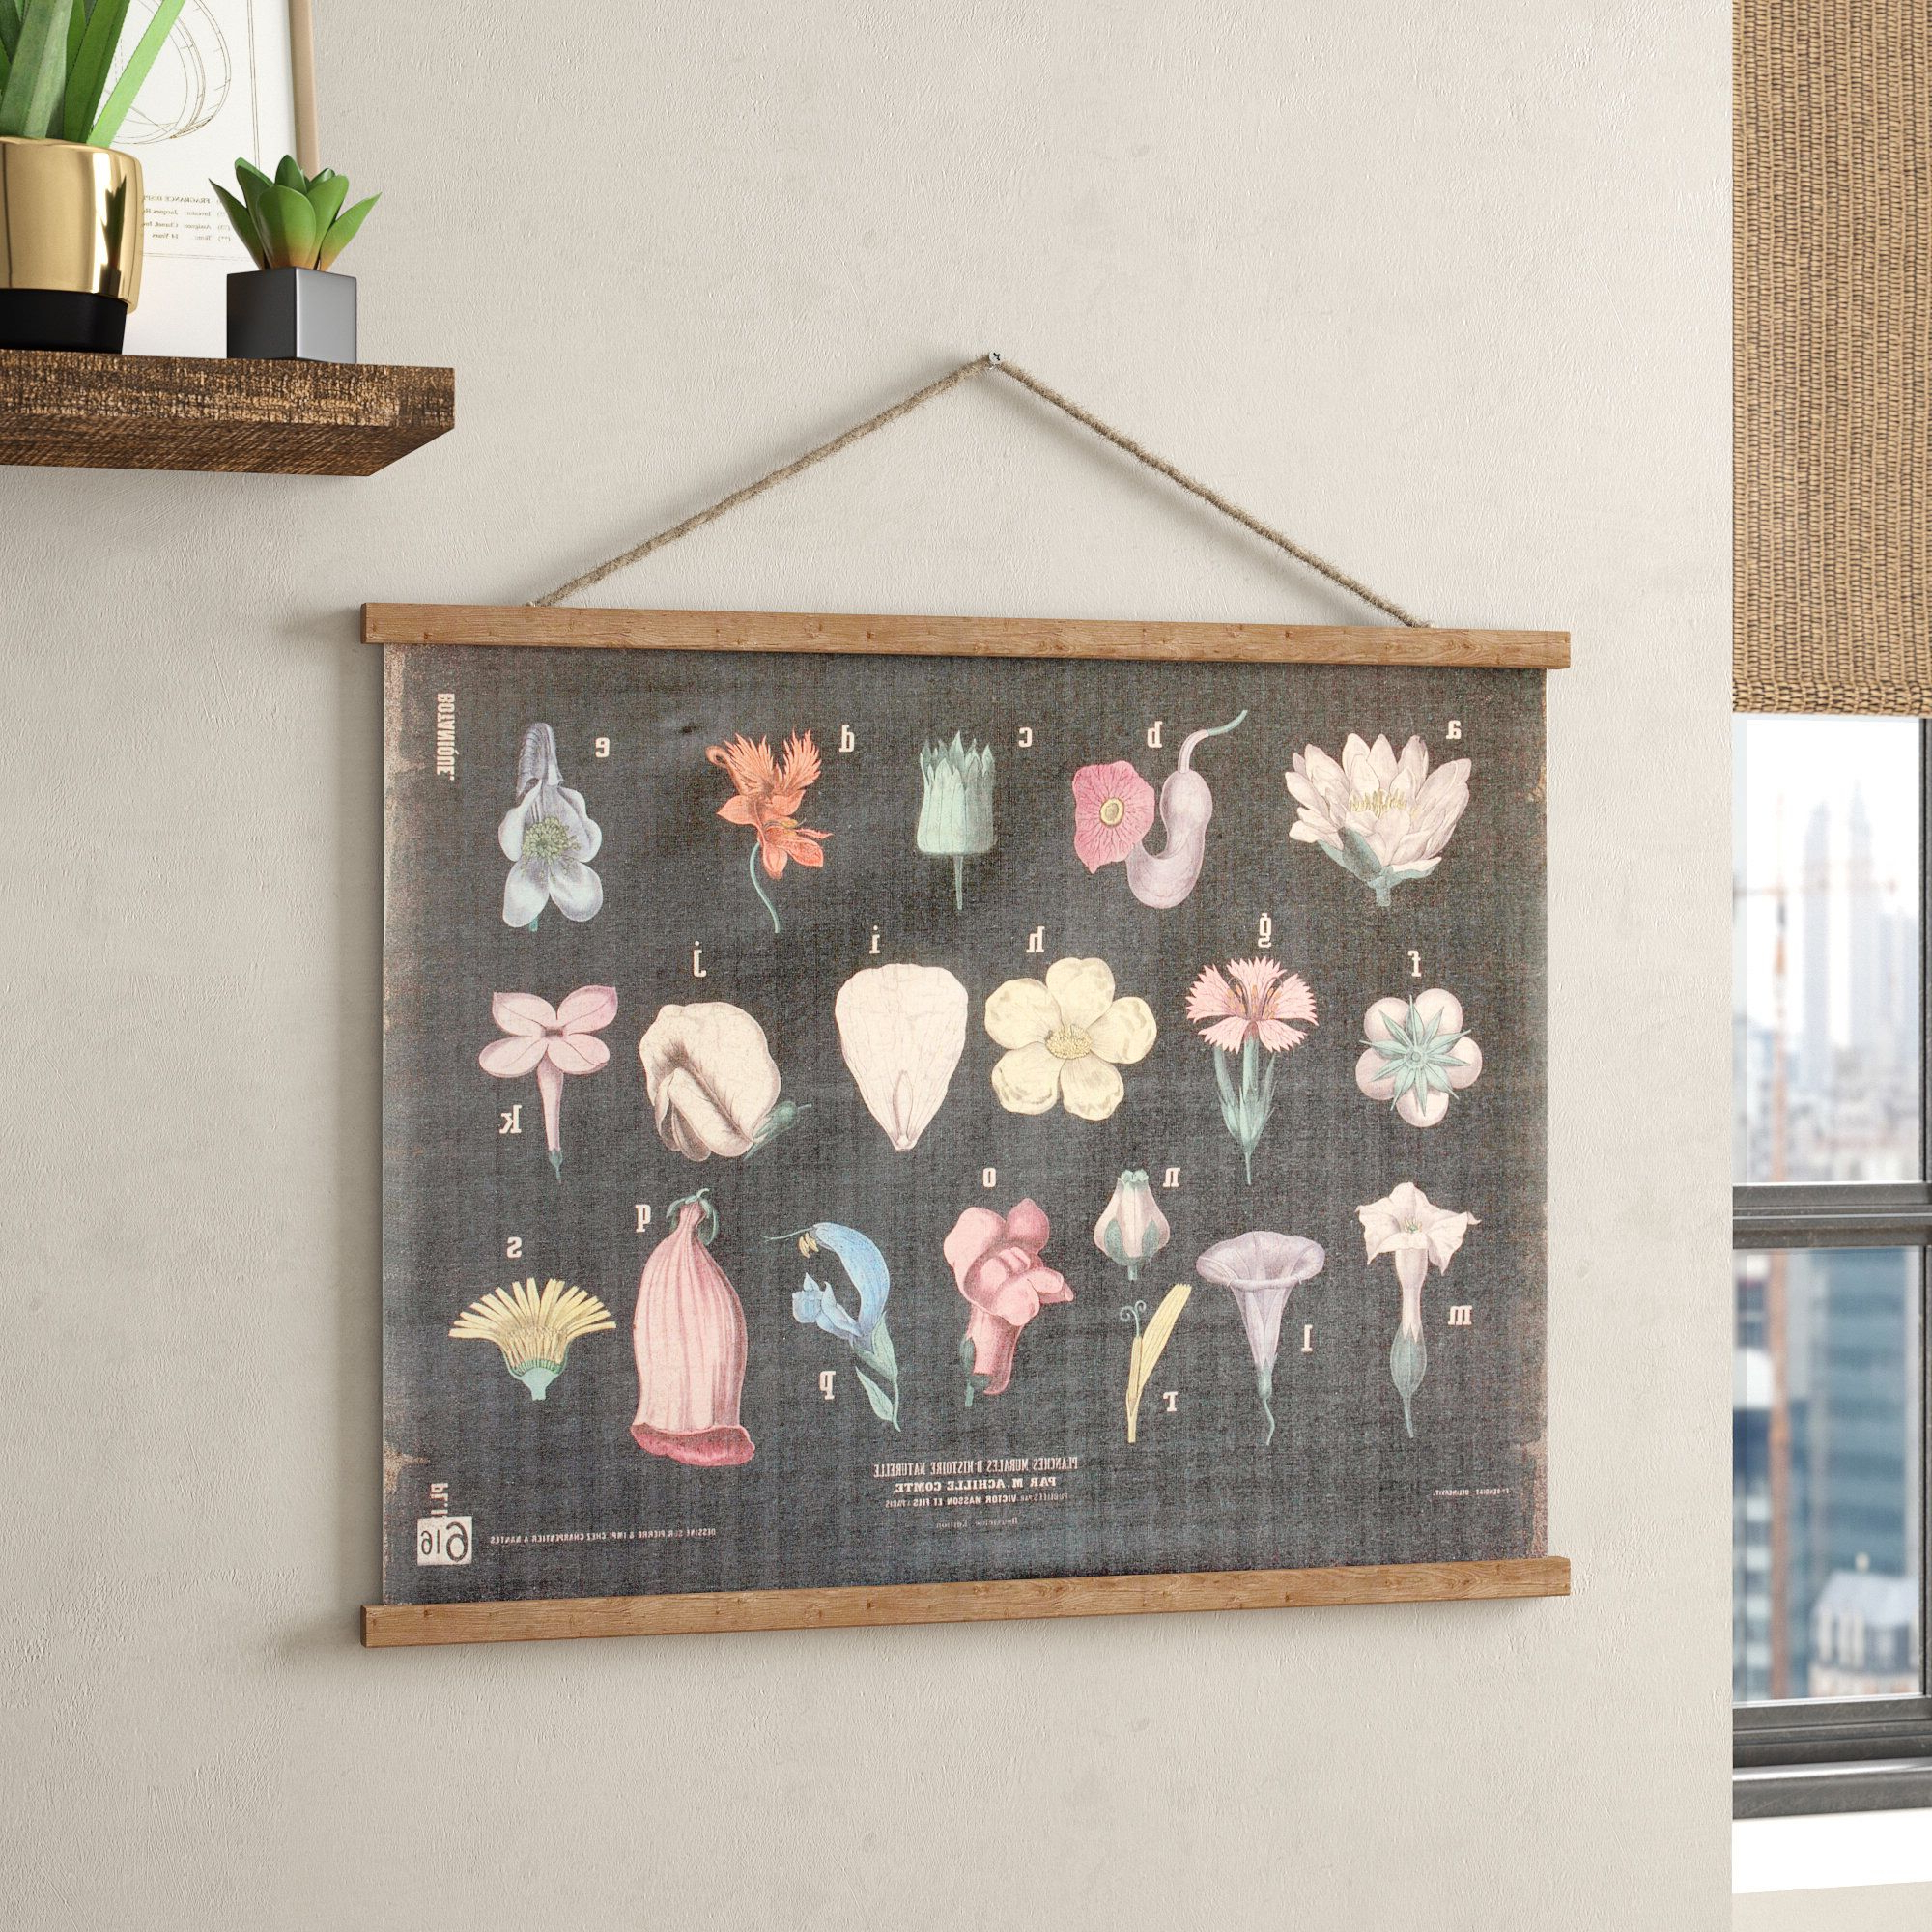 Wall Hanging Pertaining To 2019 Blended Fabric Wall Hangings (View 9 of 20)